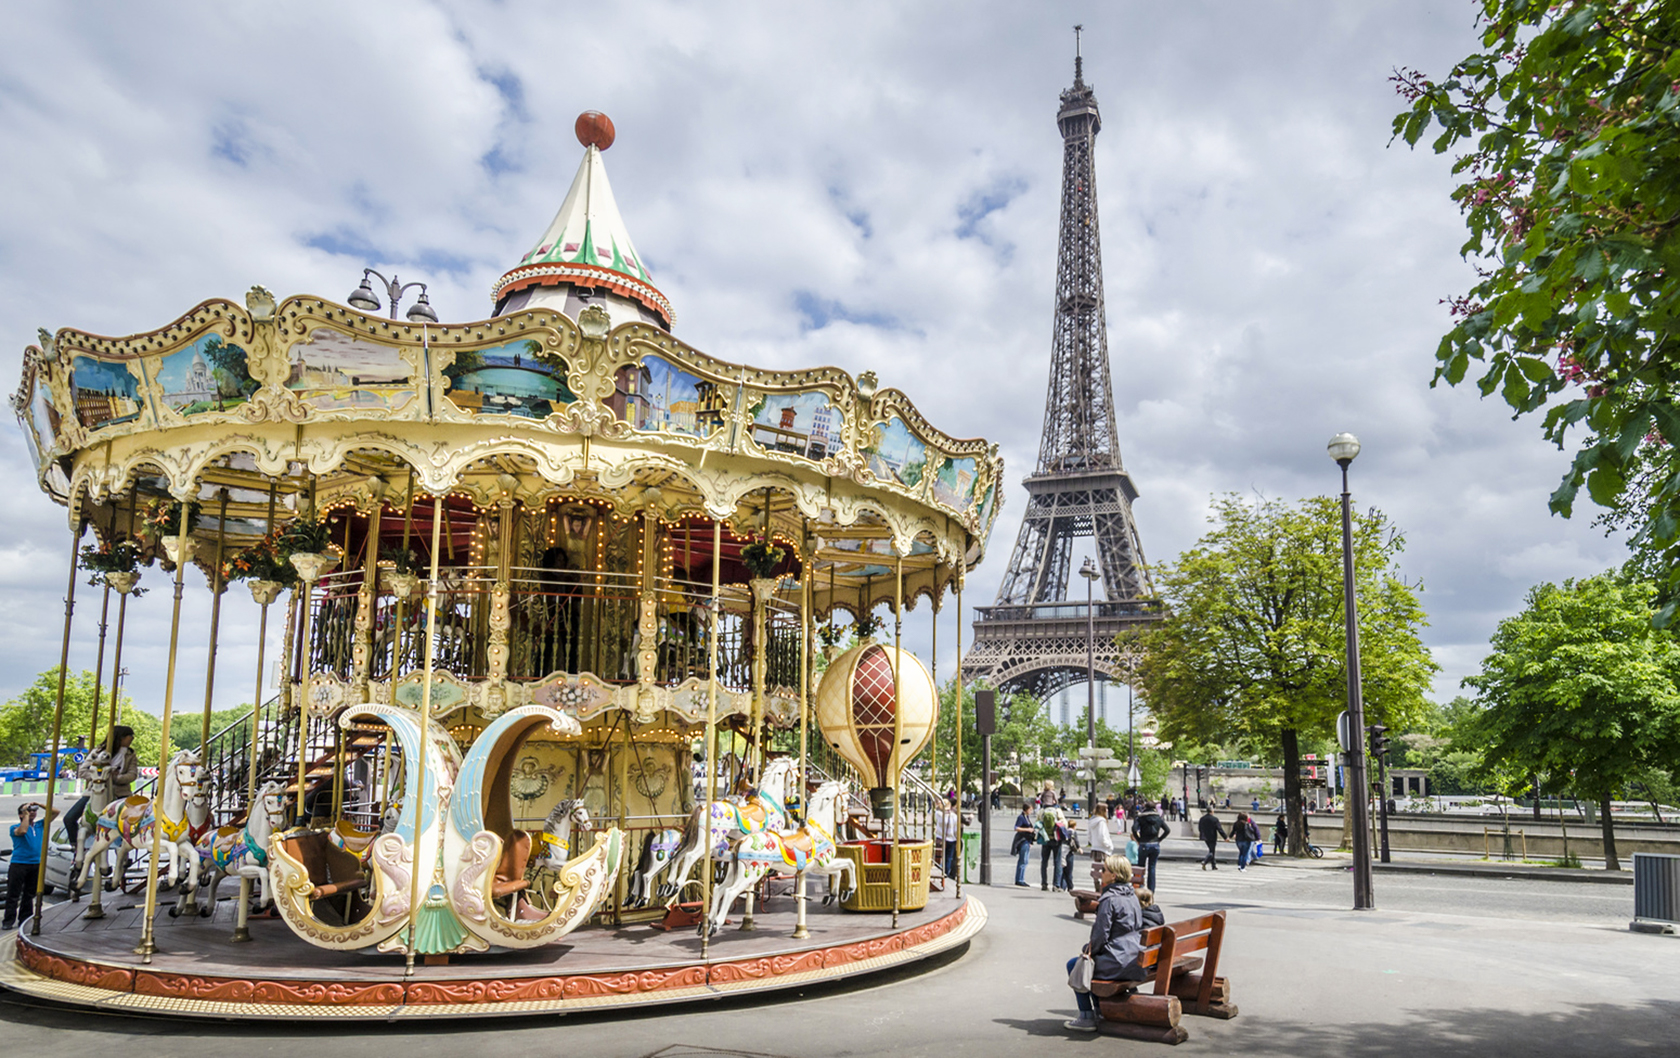 View of the Eiffel Tower in Paris with Carousel